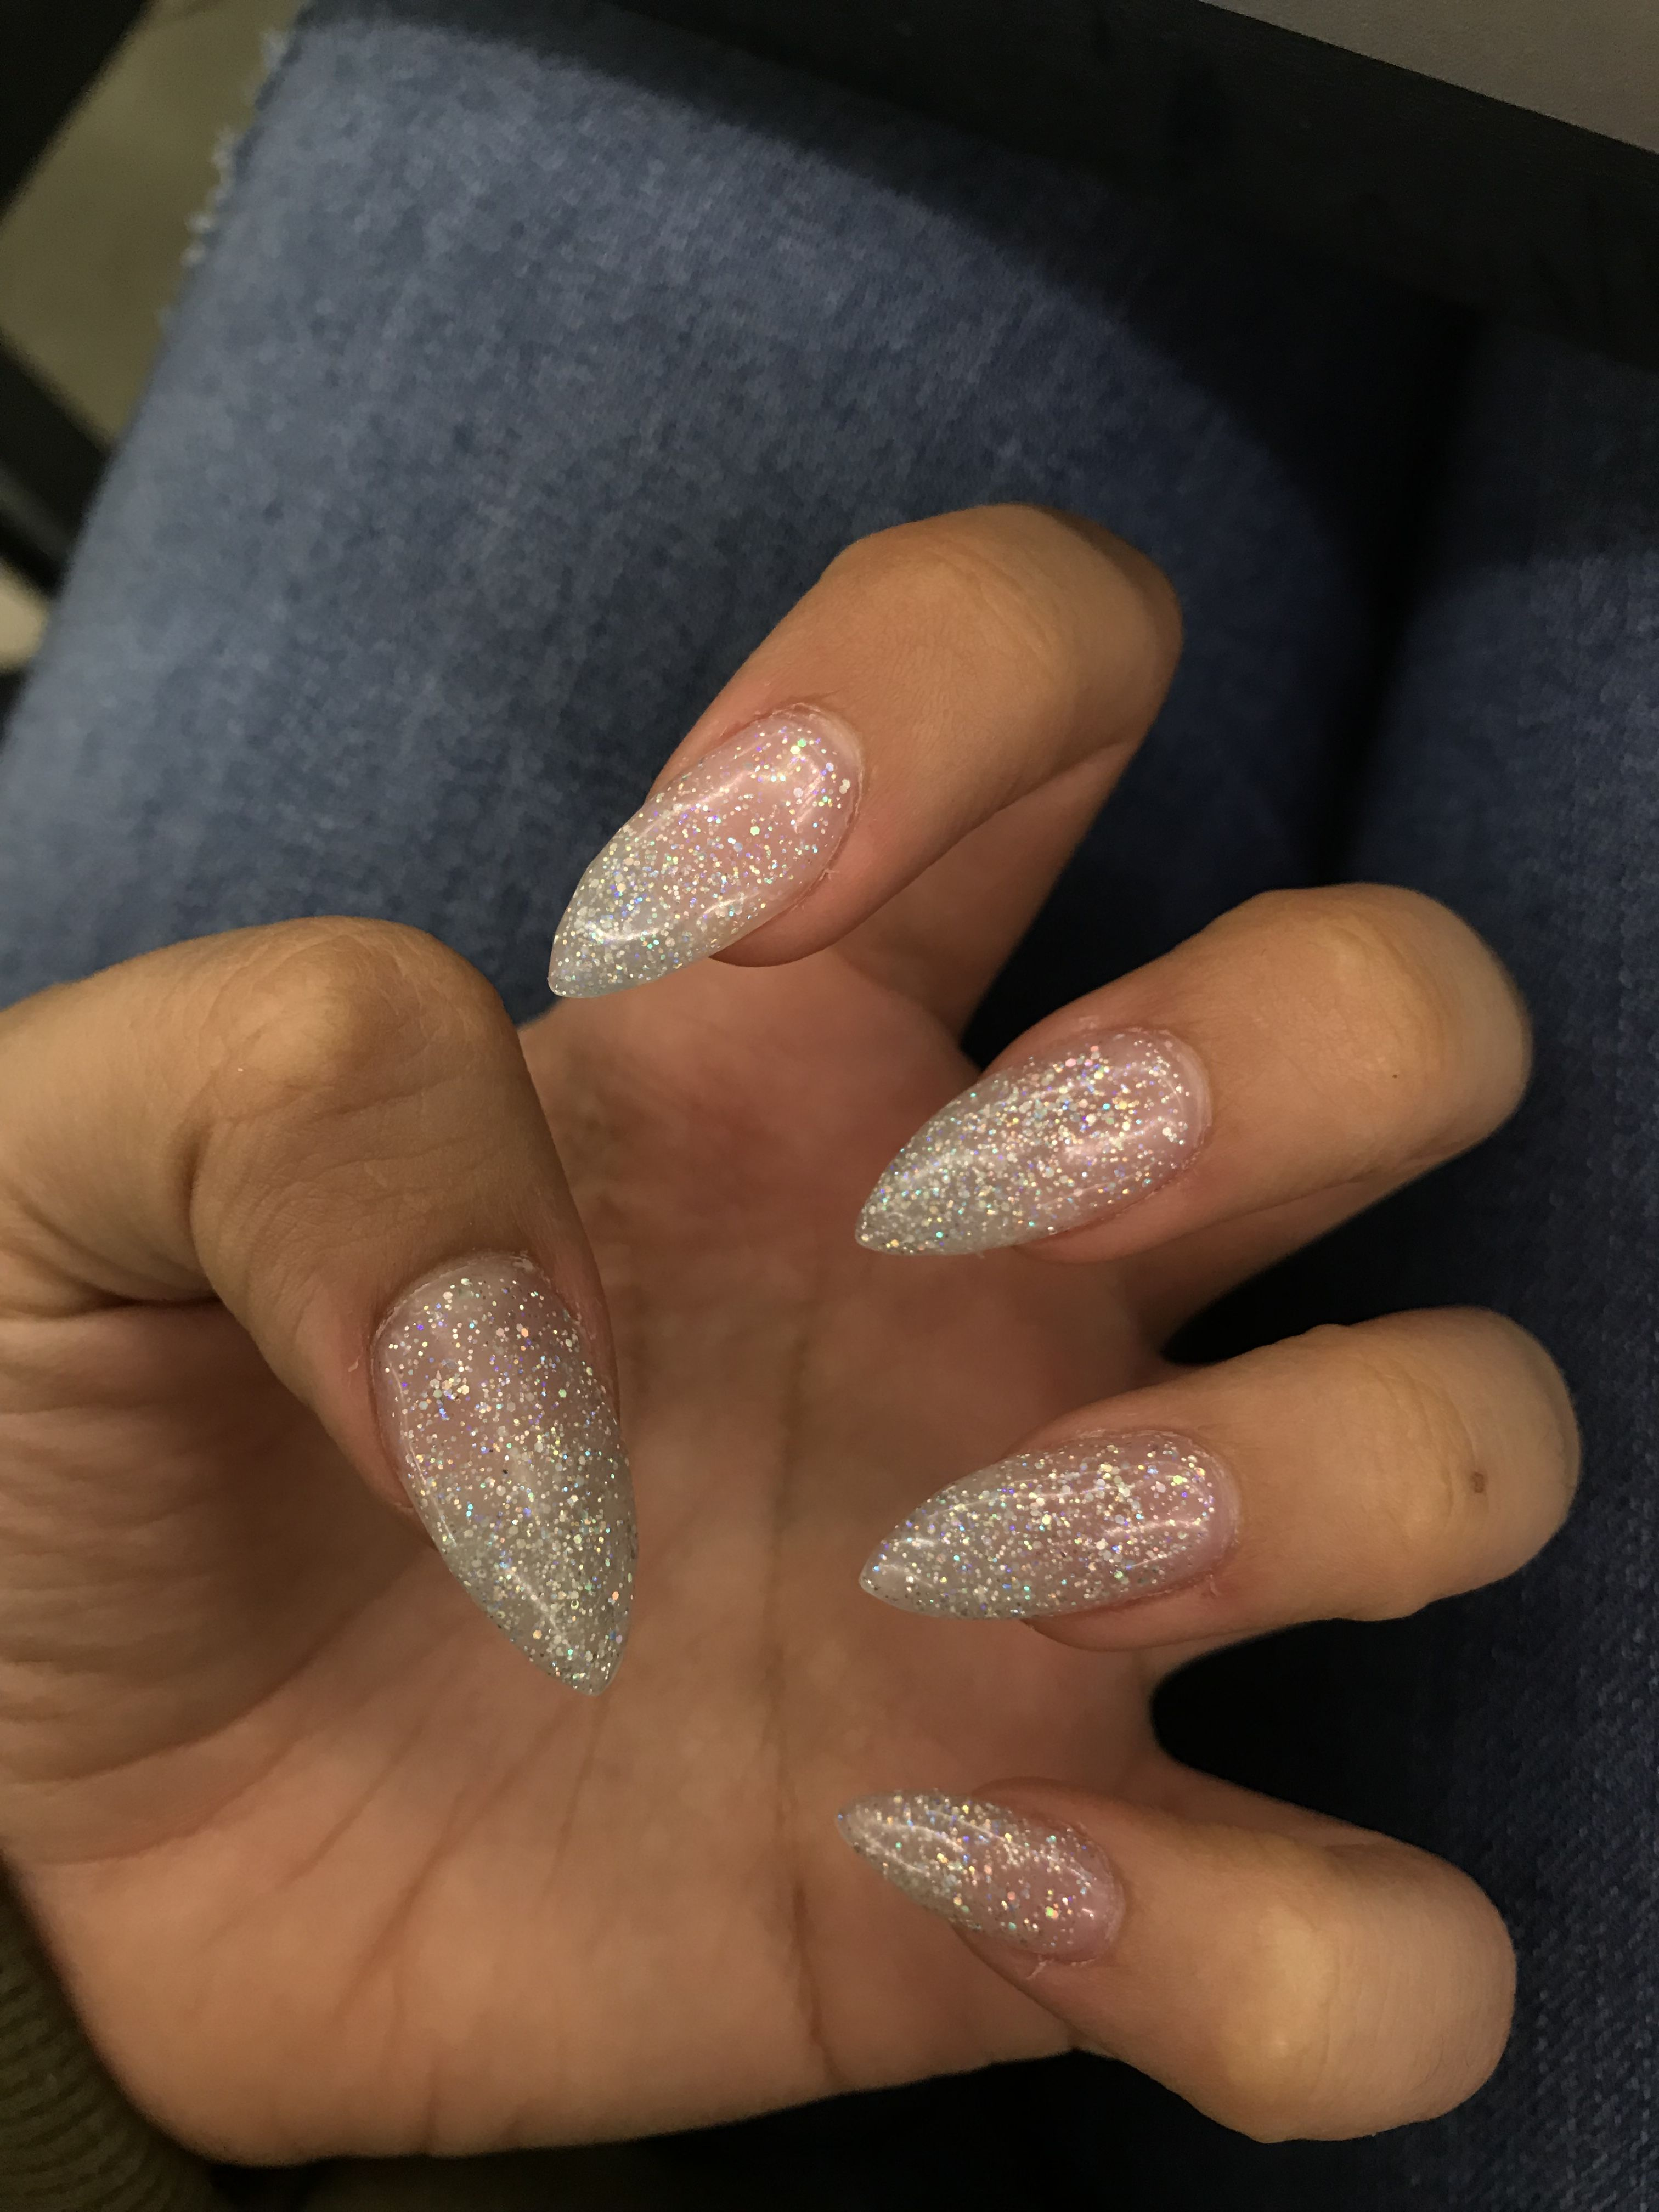 nails #nail #acrylic | Cute ass nails ❤ ❤ | Pinterest | Nail ...